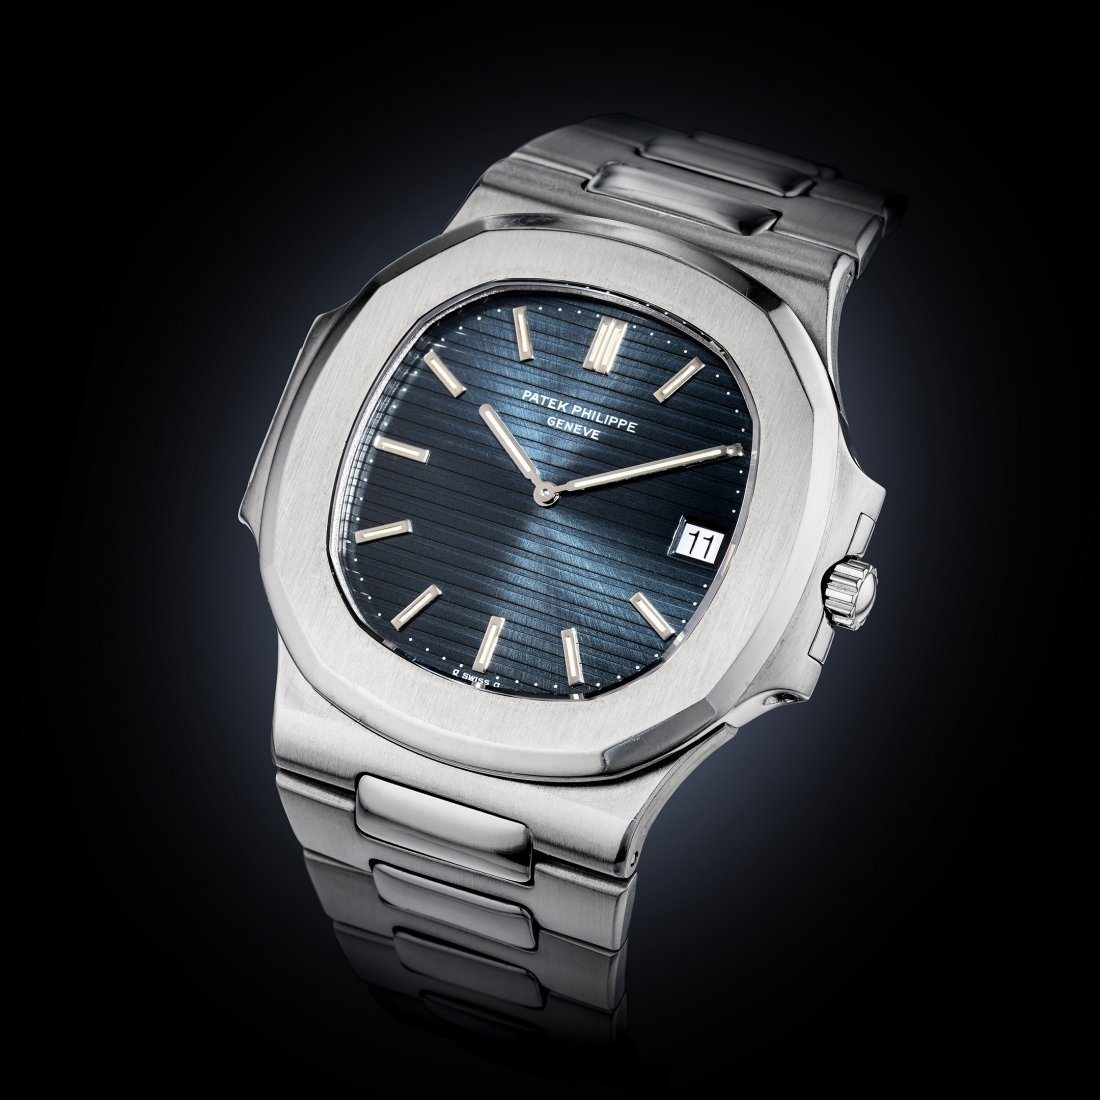 Patek Philippe Nautilus Ref. 3700/1 in Steel